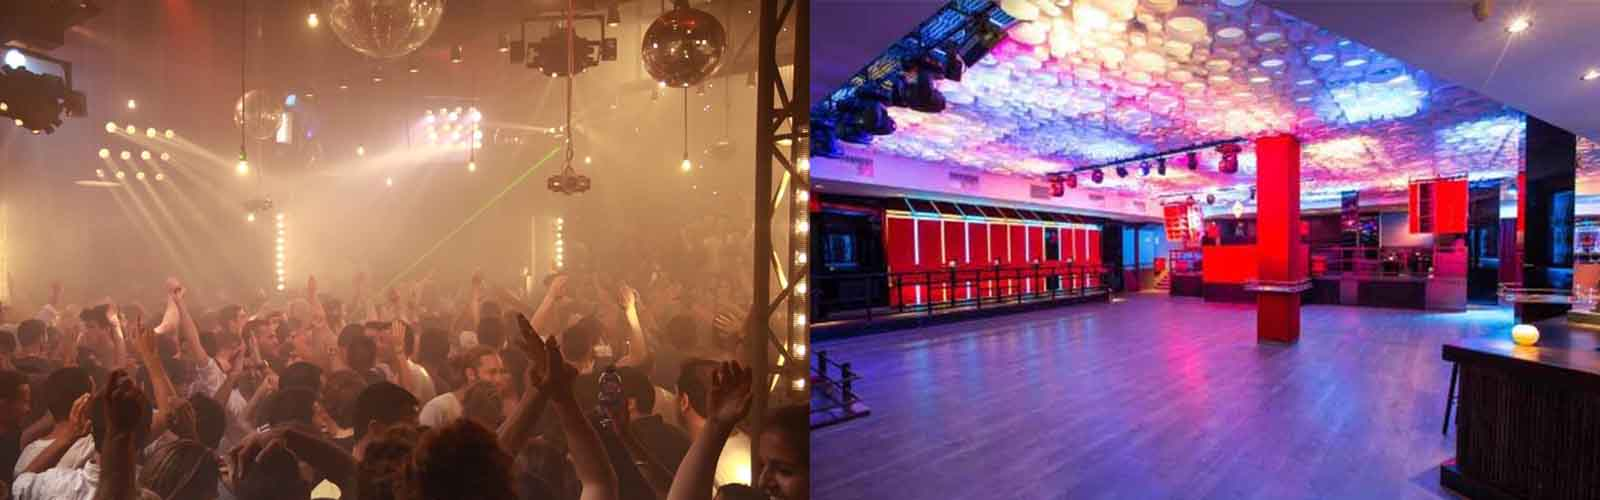 Party the Spanish way at Nightclub Sala Tango